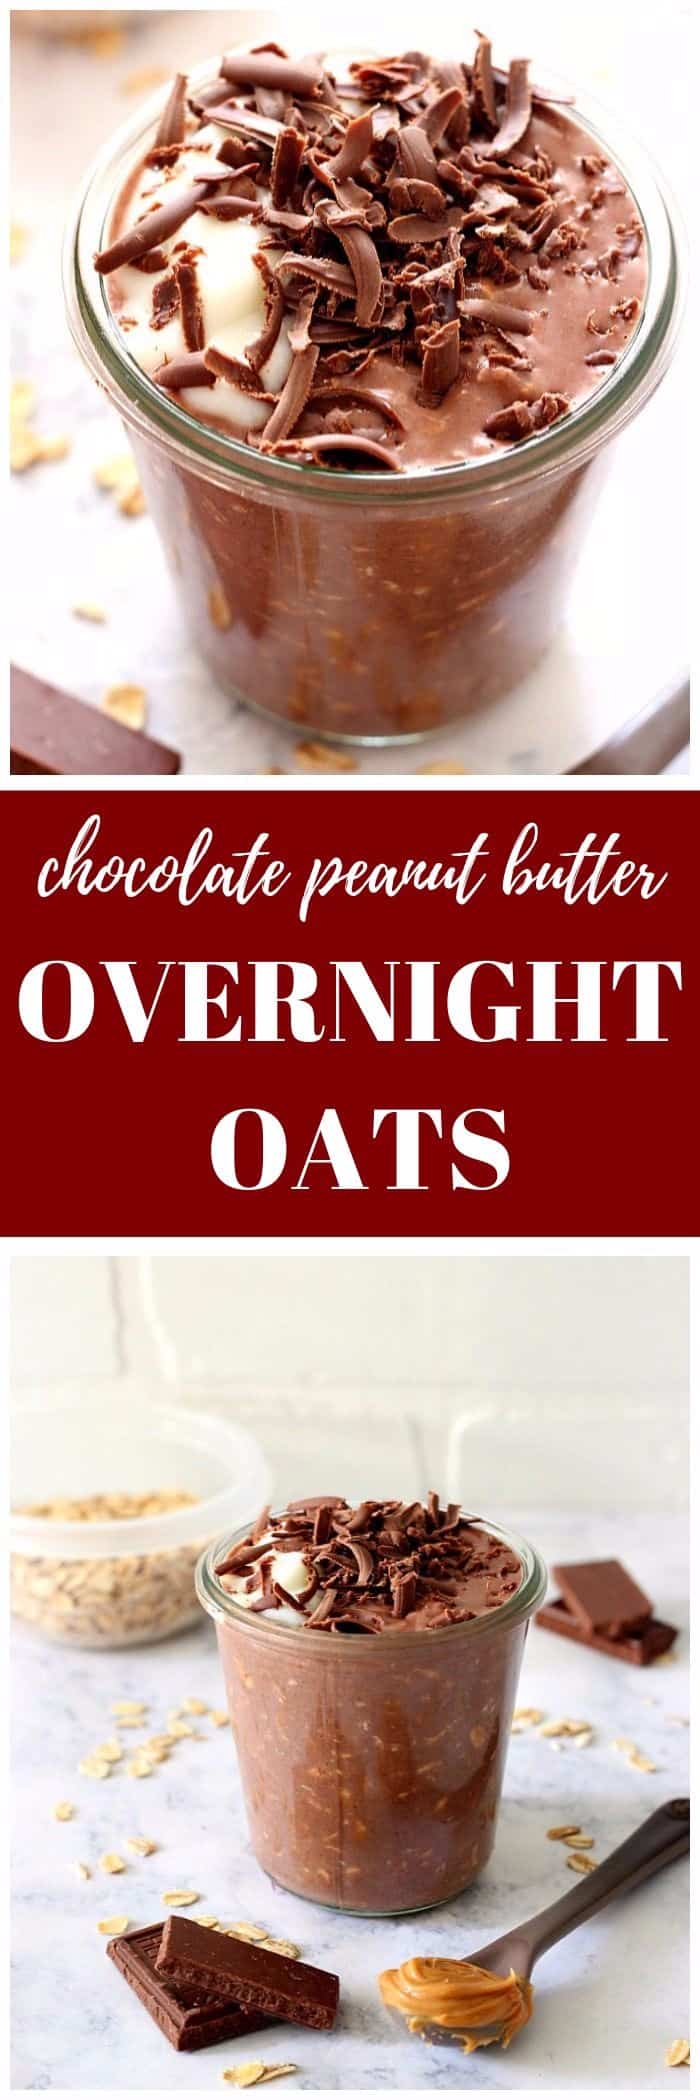 chocolate peanut butter overnight oats recipe long1 Chocolate Peanut Butter Overnight Oats Recipe